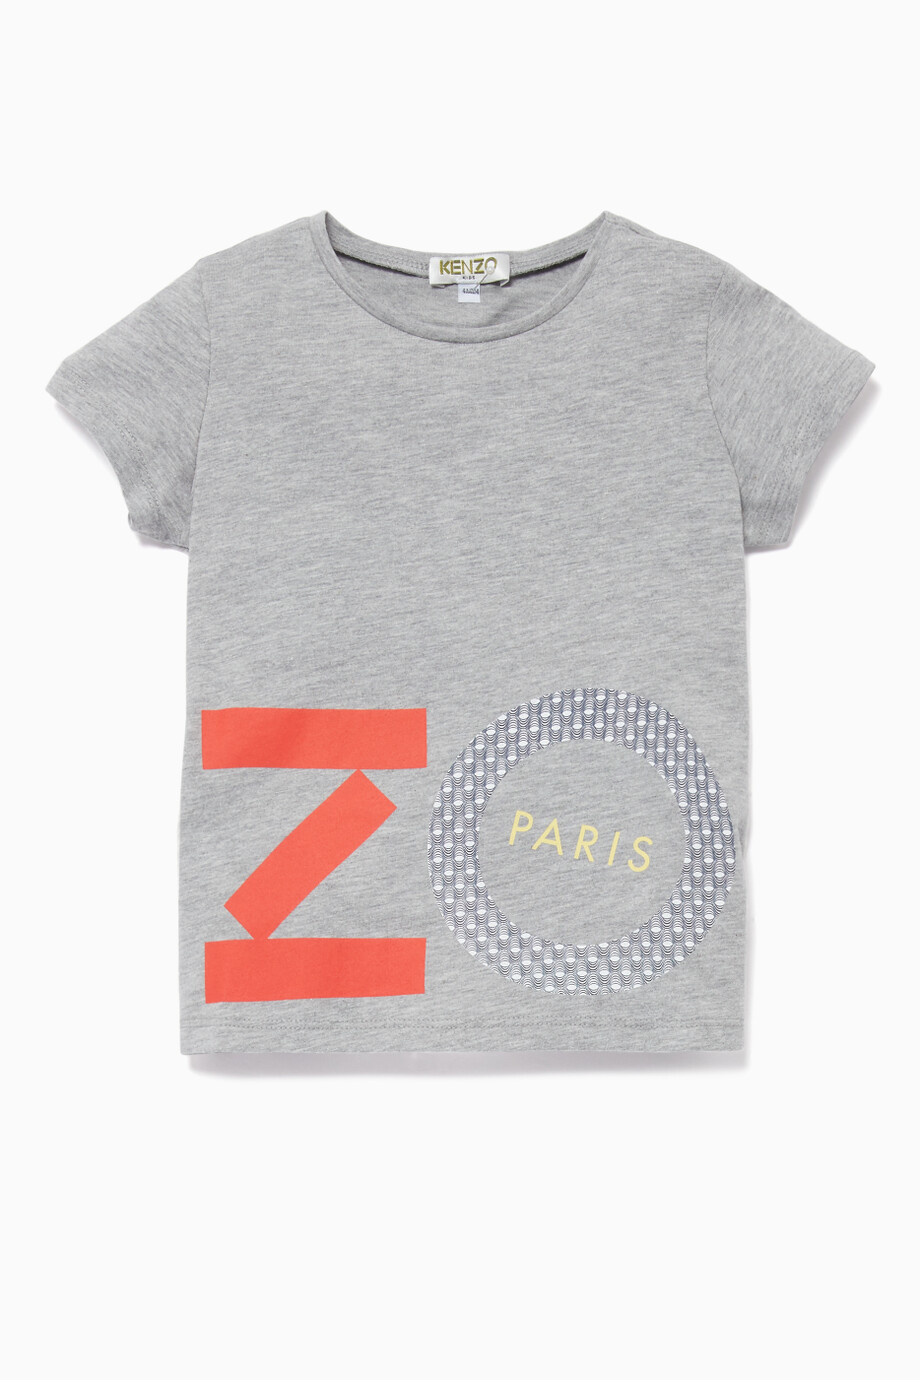 2da4fc8f5 Shop Kenzo Grey Geometric Logo Print T-Shirt for Kids | Ounass UAE